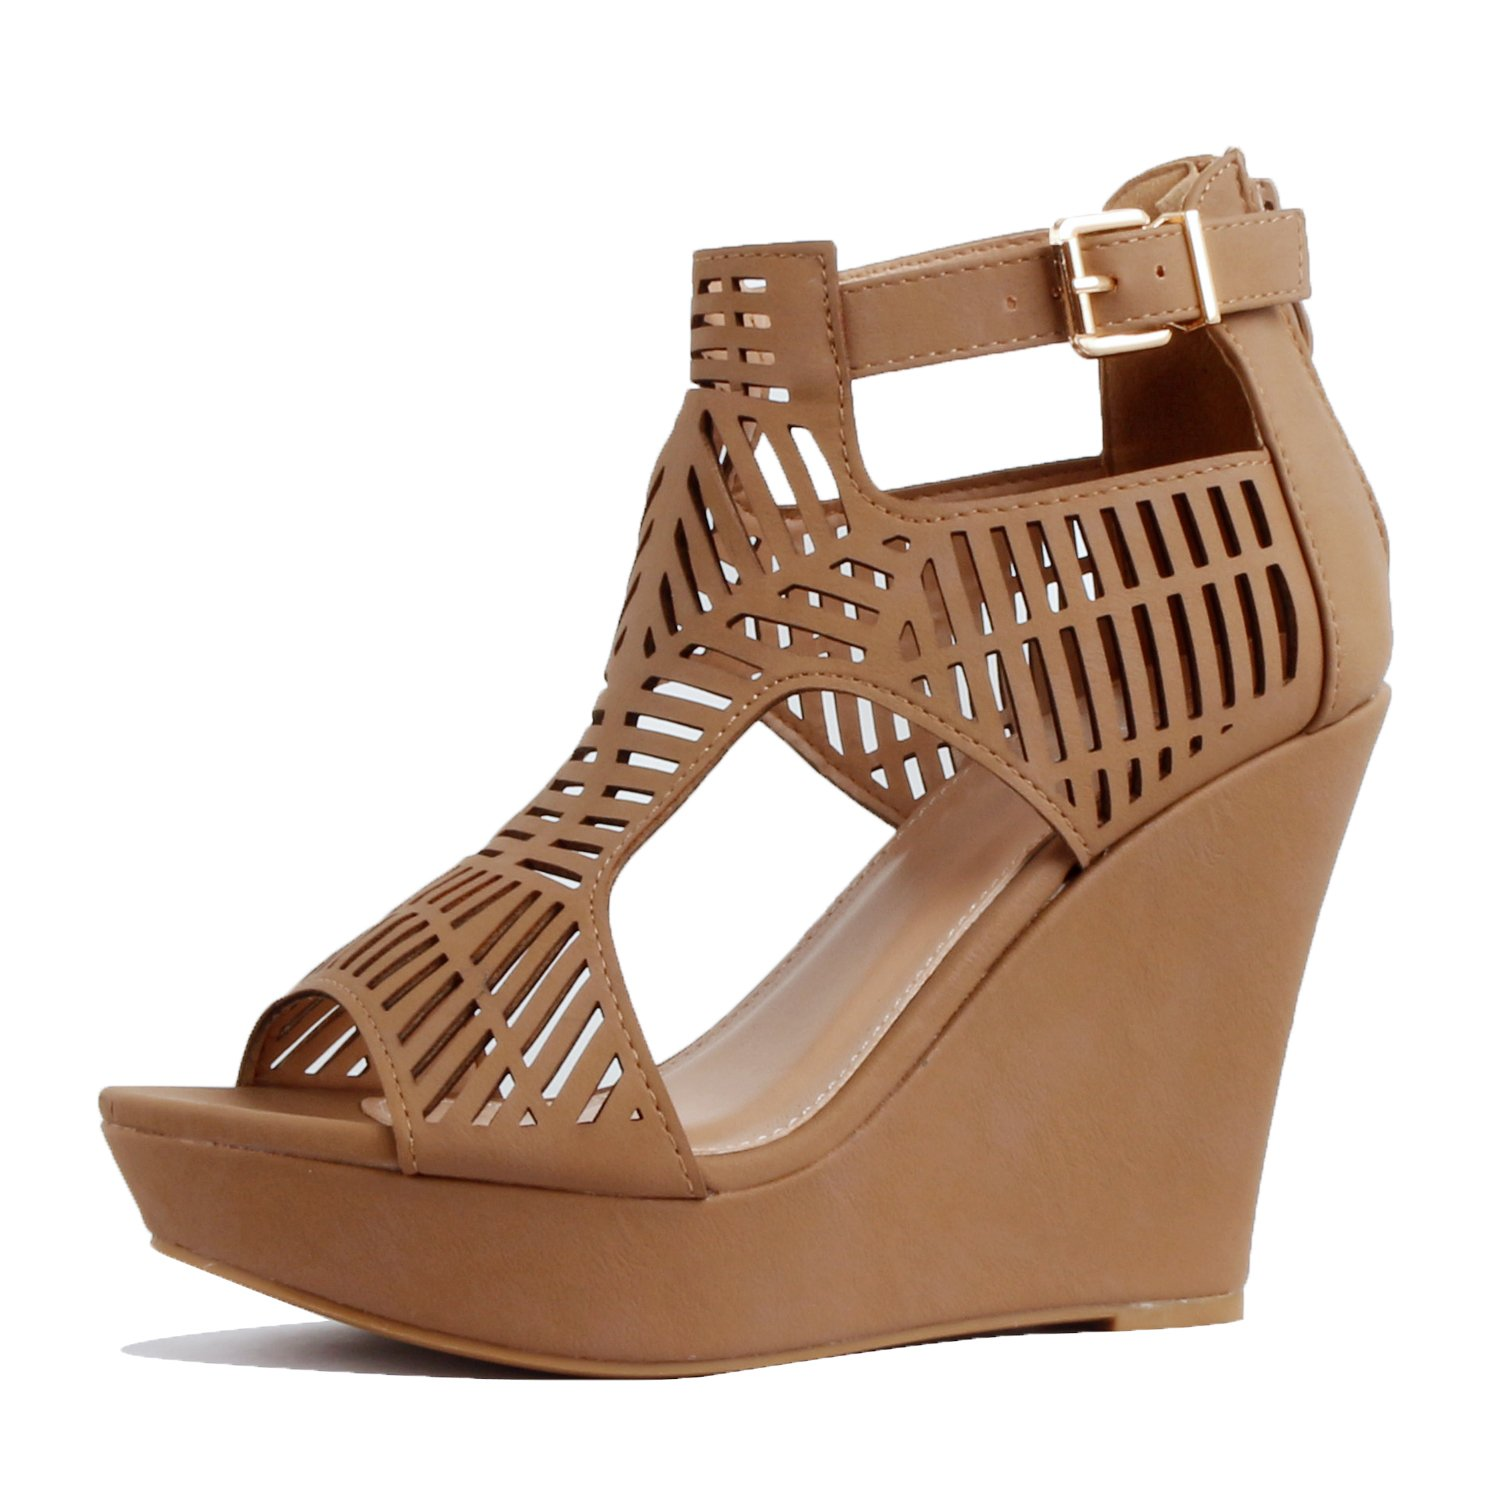 Guilty Heart Womens Gladiator Cut Out Comfortable High Platform | Perforated Wedges Sandals